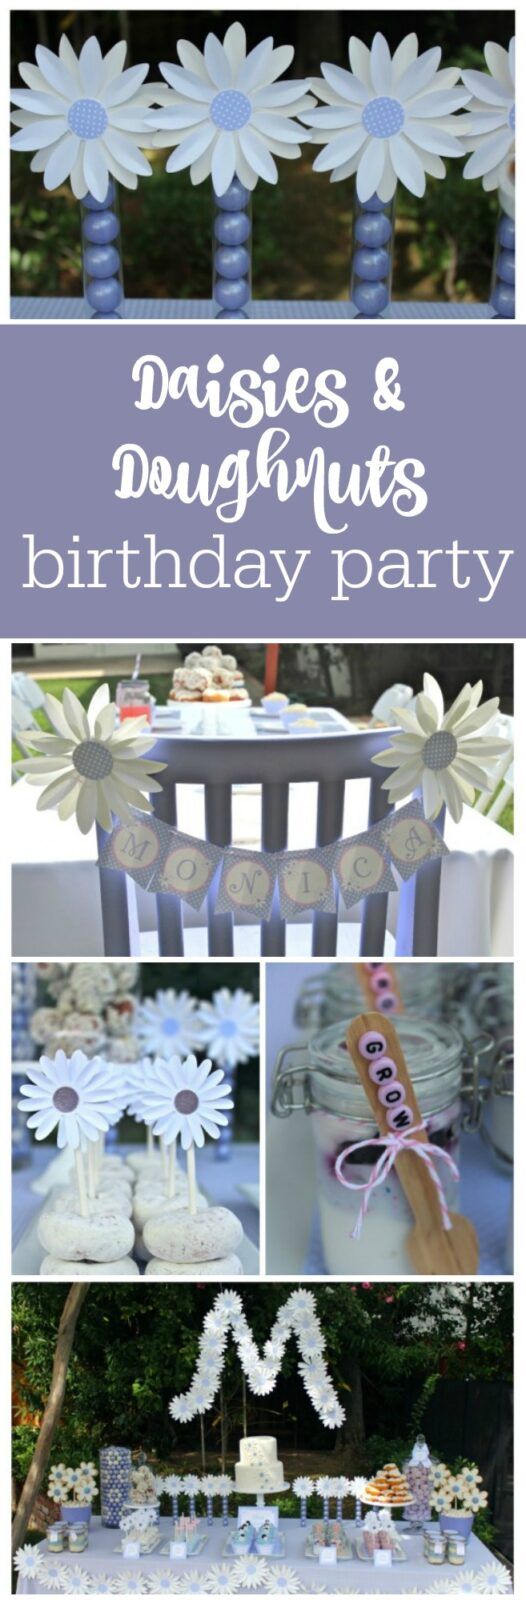 Daisies and Doughnuts Birthday Party by Bloom Designs Online featured on The Party Teacher